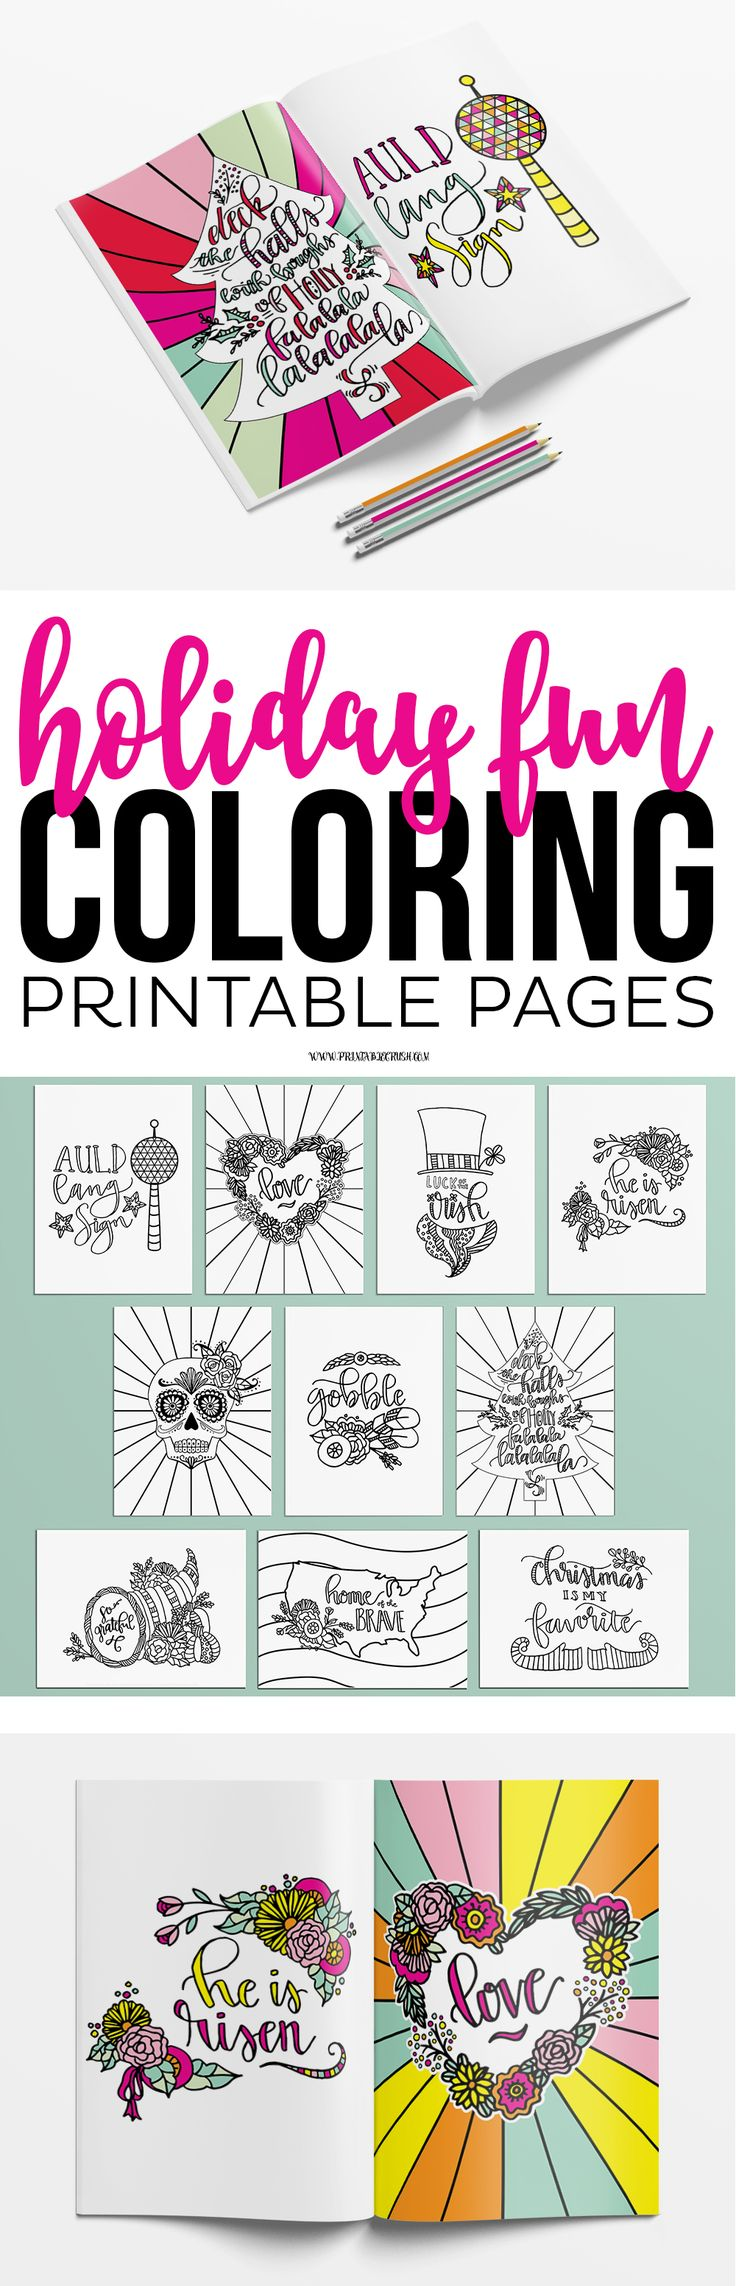 Princess holiday coloring pages - Enjoy Coloring These Holiday Coloring Pages For Adults Or Kids Includes 10 Pages For The